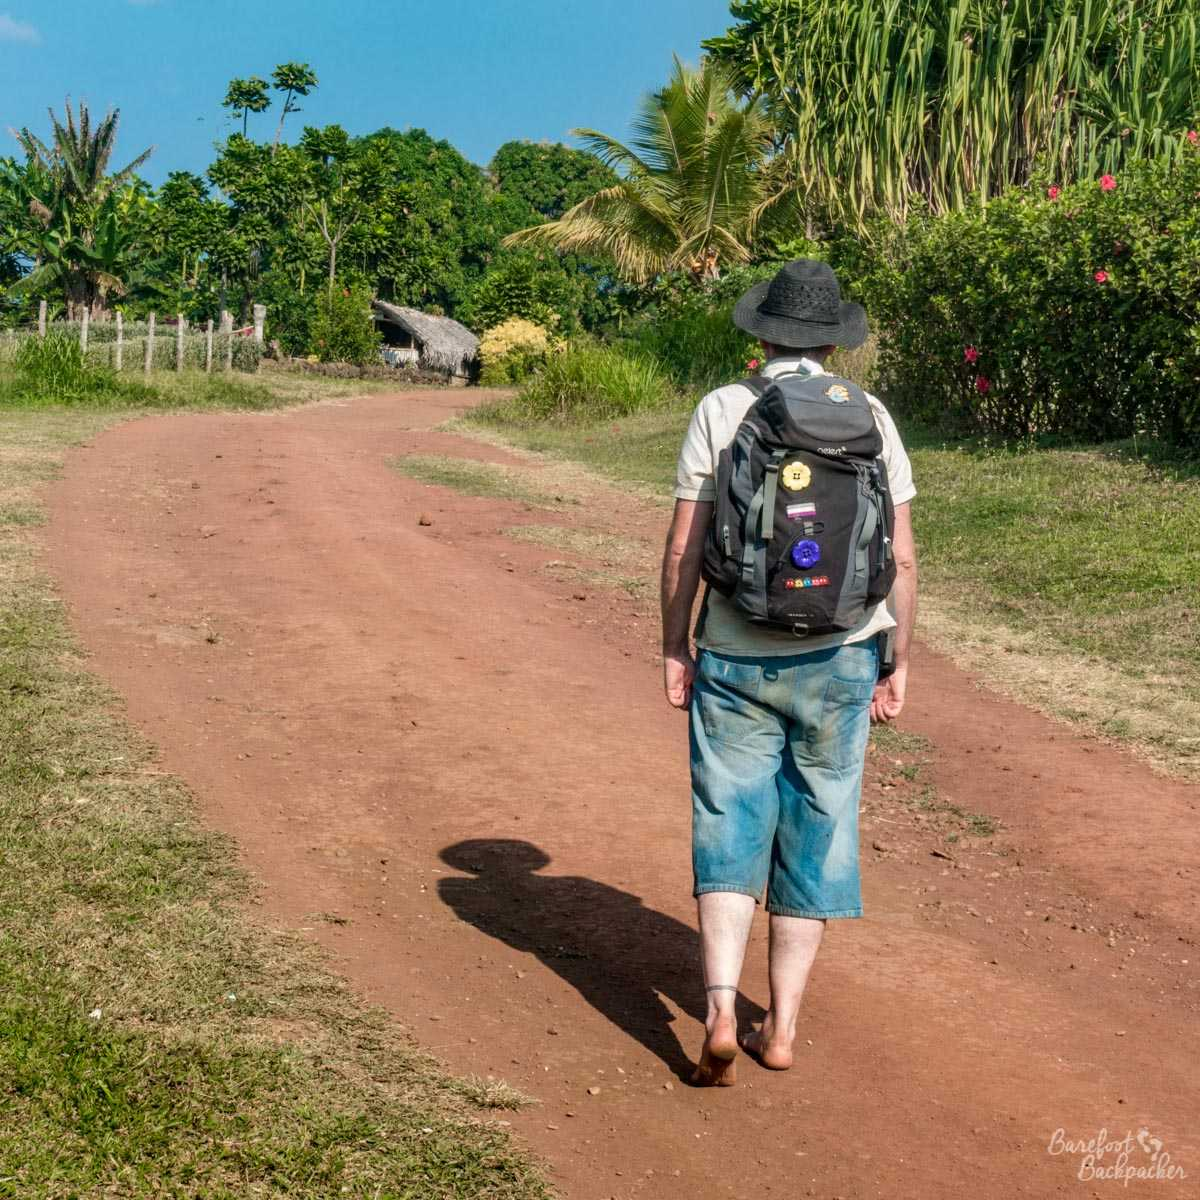 Man (me, obviously) walking down a stony, dusty, orange road on the island of Gaua in Vanuatu. There's trees on the right, bushes on the left, cottages in the distance, and blue sky. The man is barefoot, wearing three-quarter length blue jeans, and is carrying a backpack which fits in hand luggage on an aeroplane.